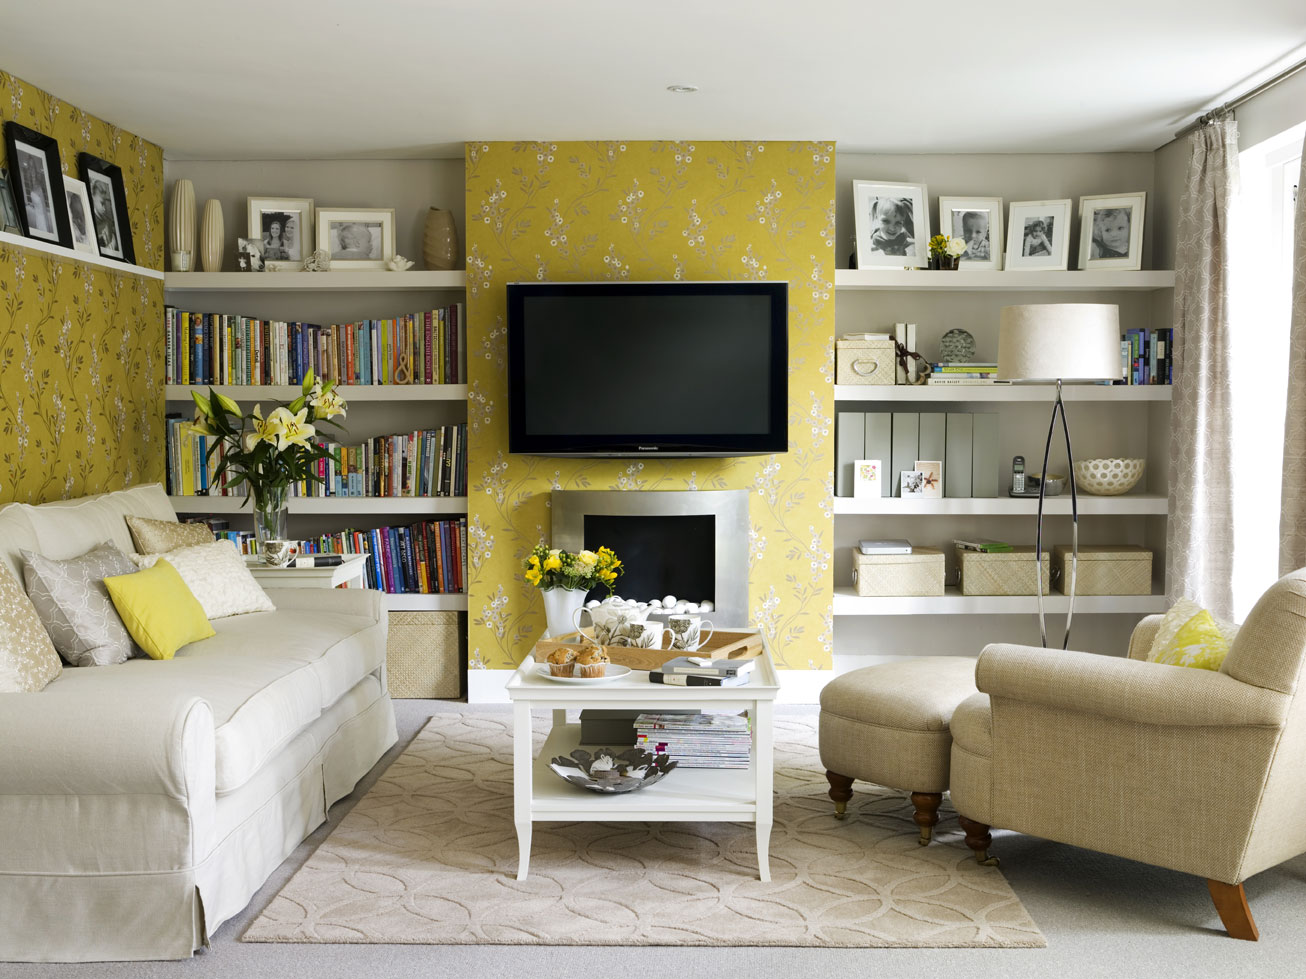 404 not found for Yellow and grey living room ideas